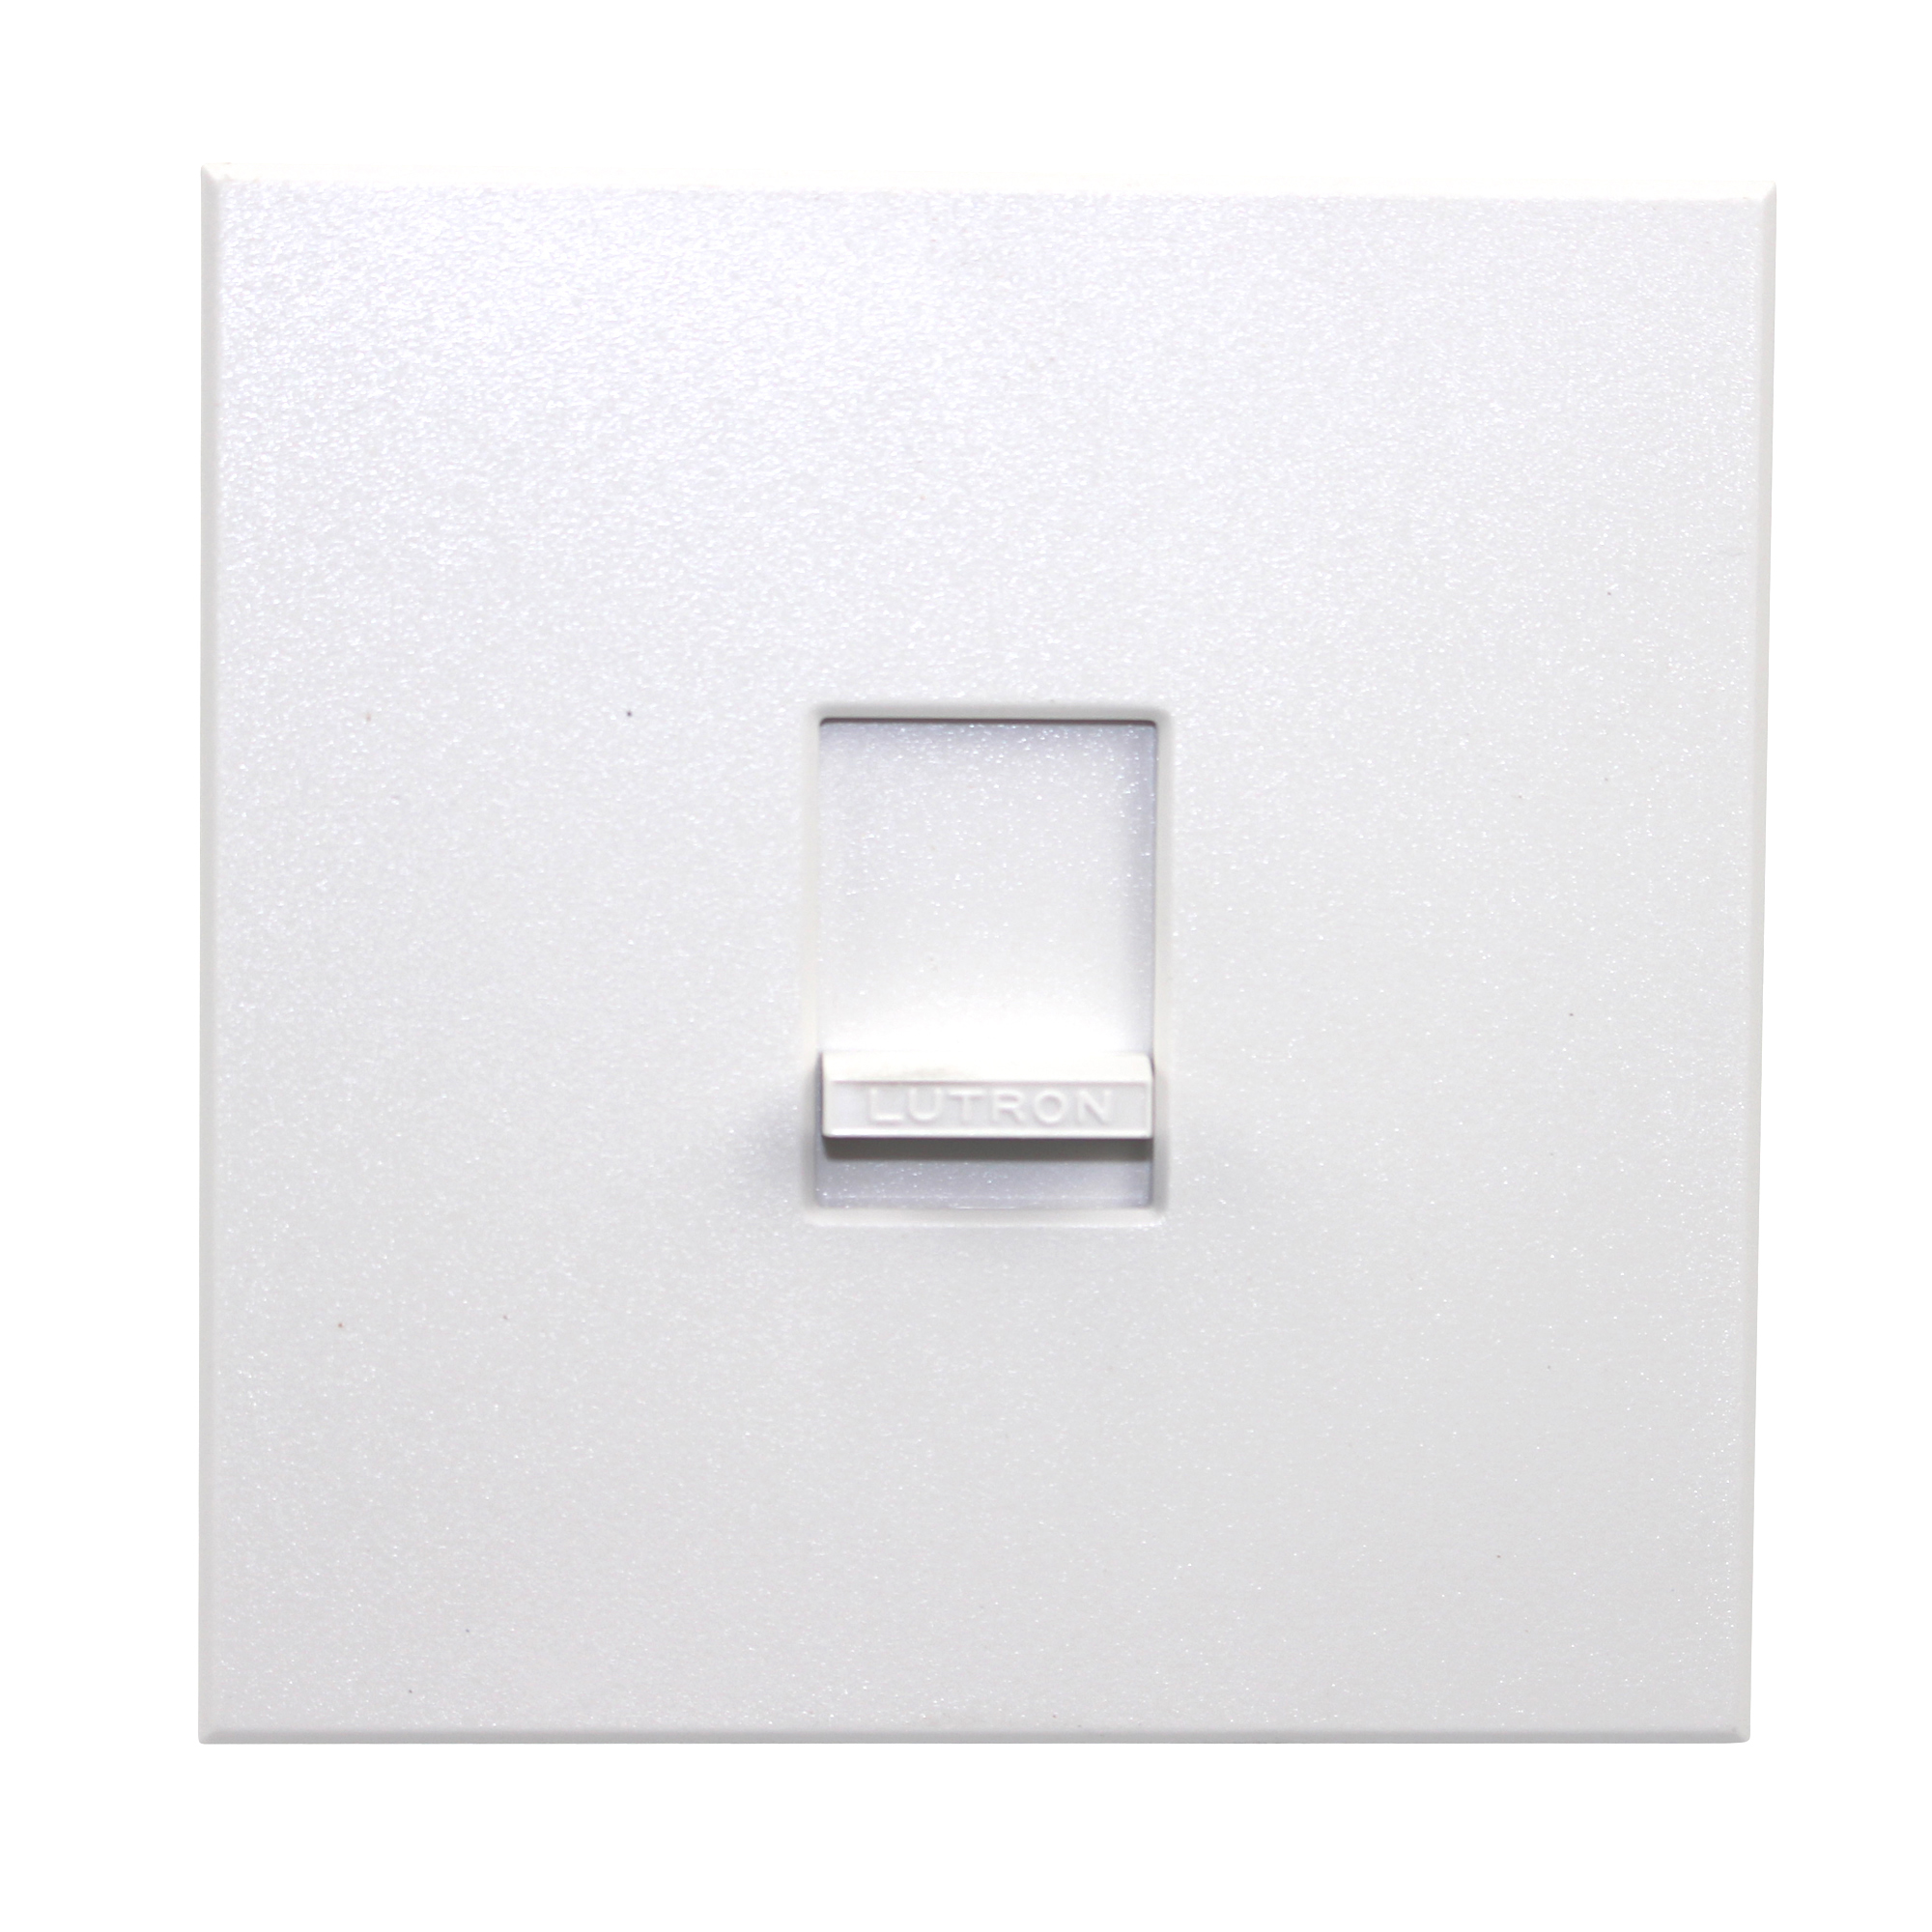 Fluorescent Light Dim: LUTRON NF-10-277-WH LIGHTING DIMMER SLIDE FLUORESCENT 1